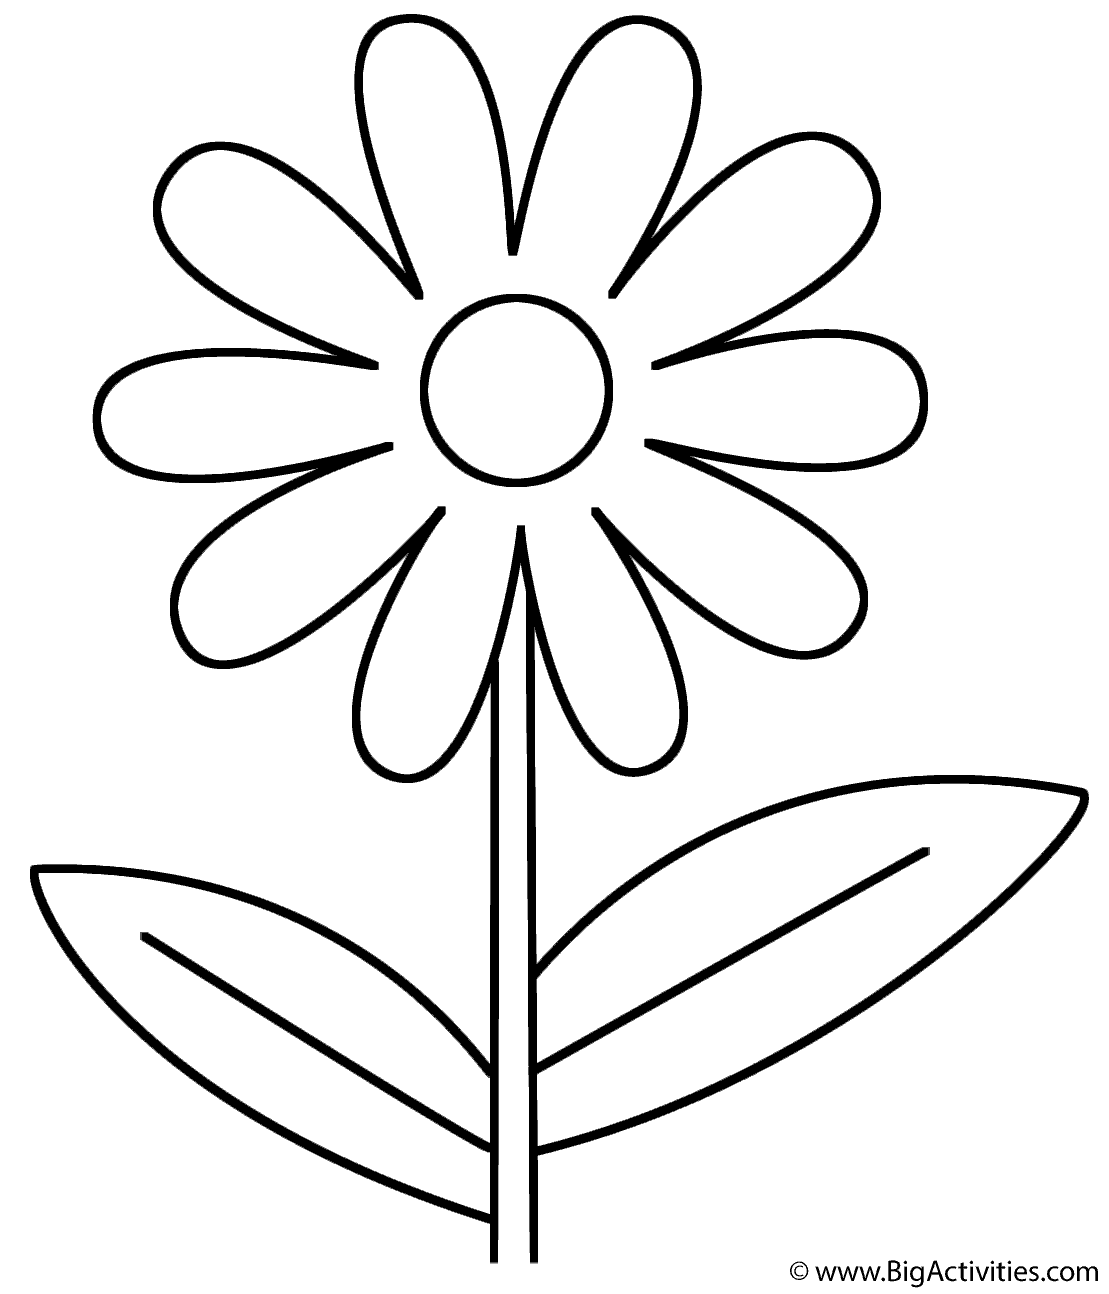 coloring flower cartoon images coloring pages flower cartoons gt simple shapes free images cartoon flower coloring